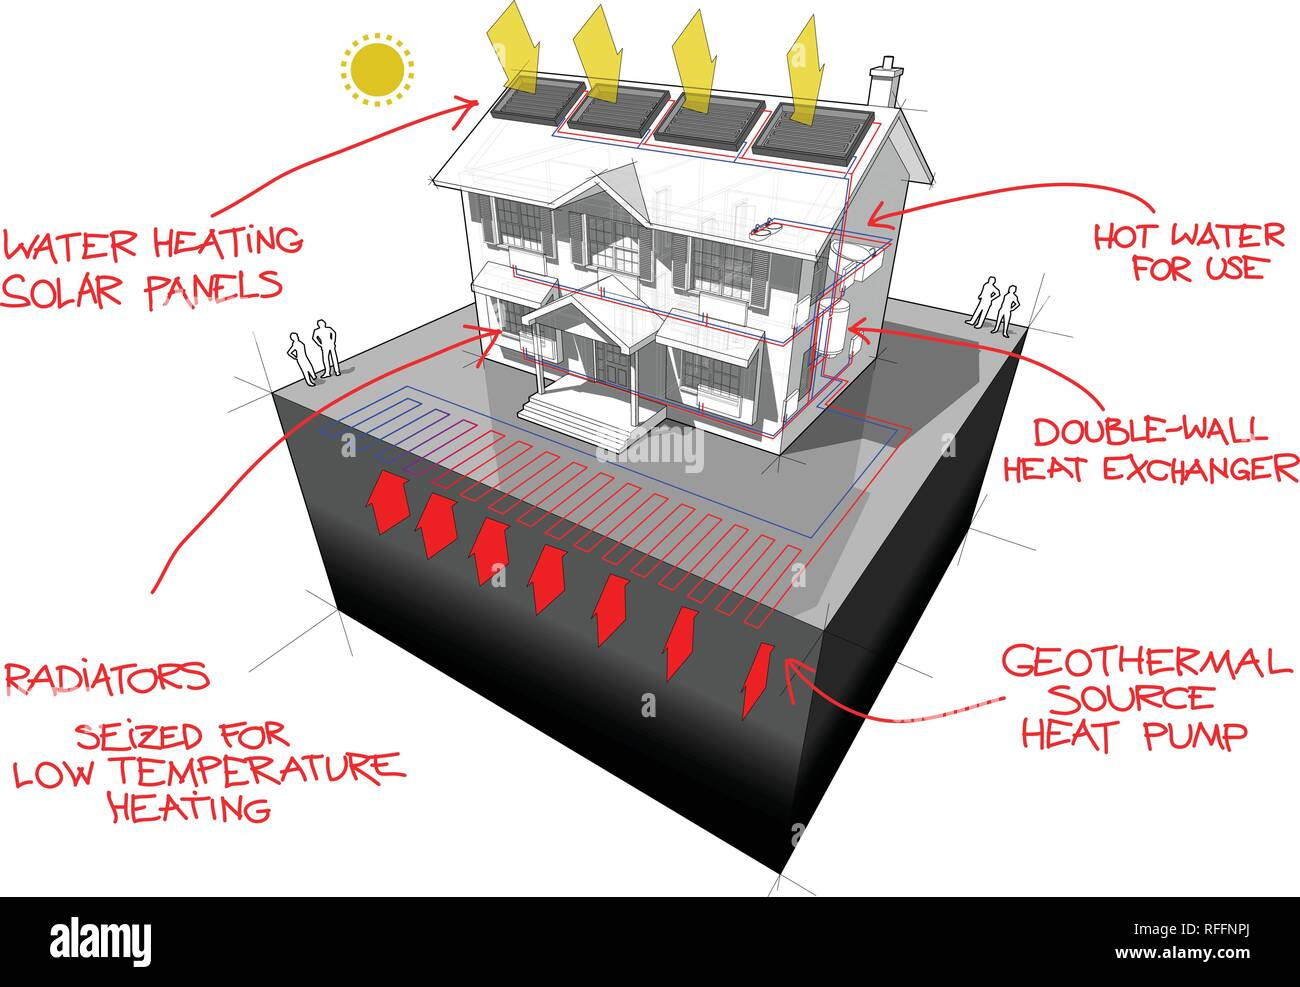 diagram of a classic colonial house with planar ground source heat pump and solar panels on the roof as source of energy for heating and red hand draw - Stock Vector